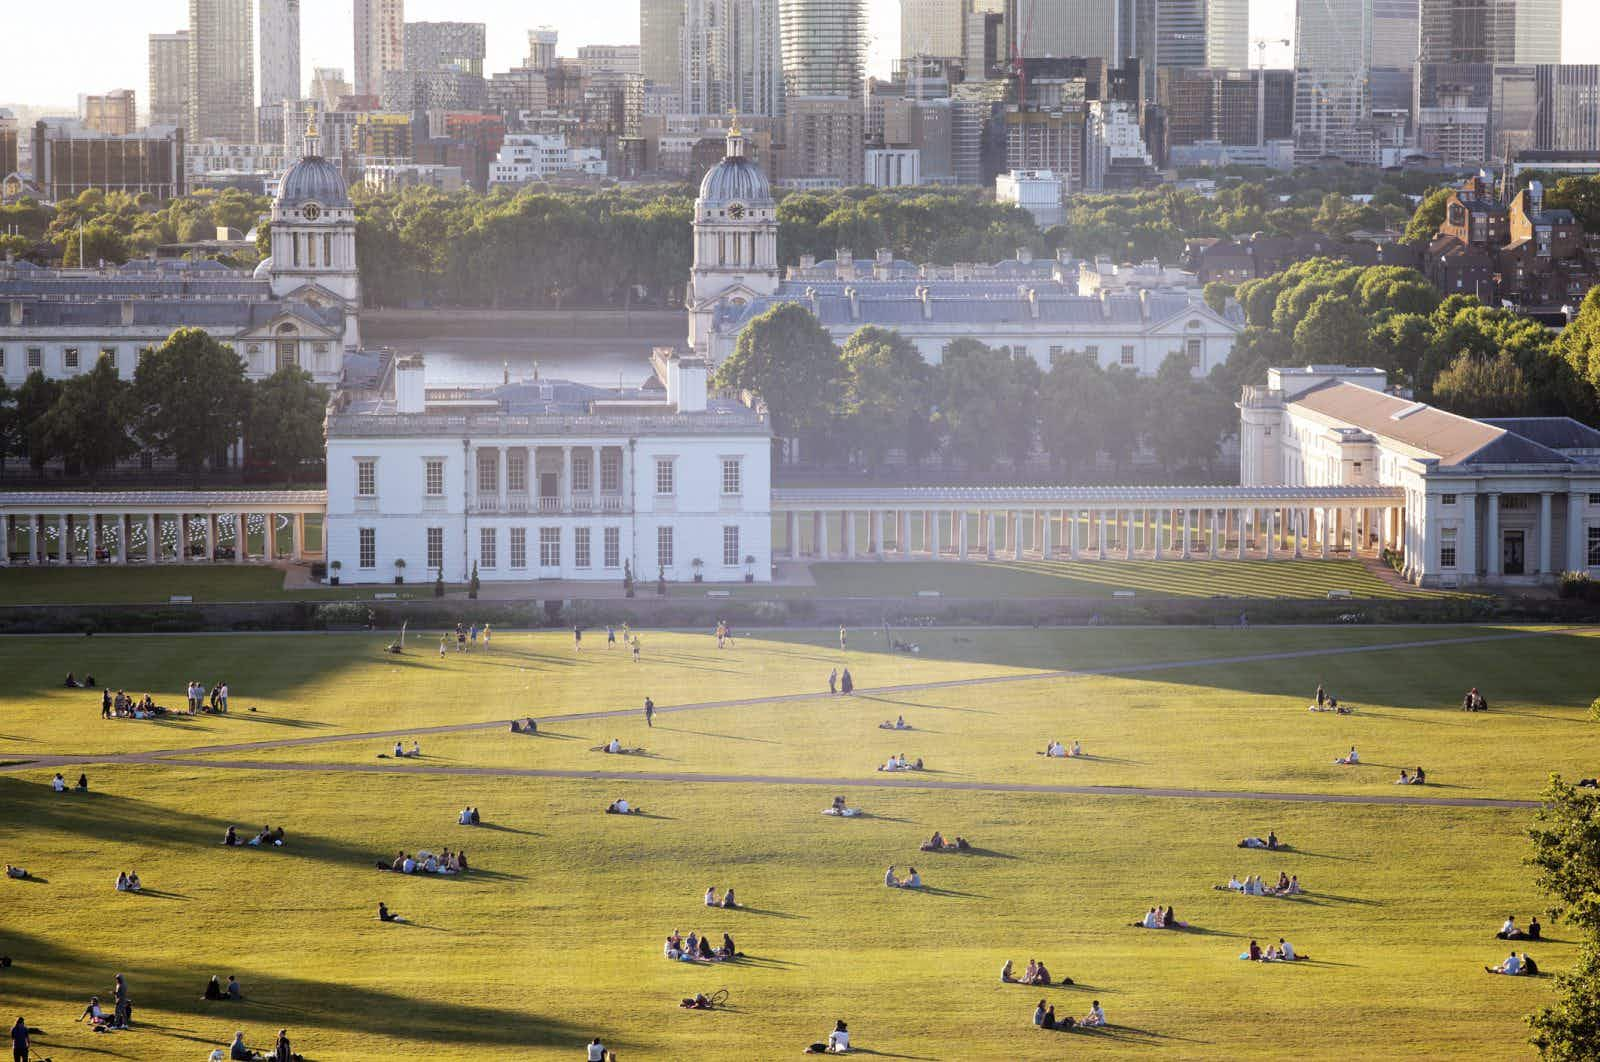 London is the first National Park City - here's what that means